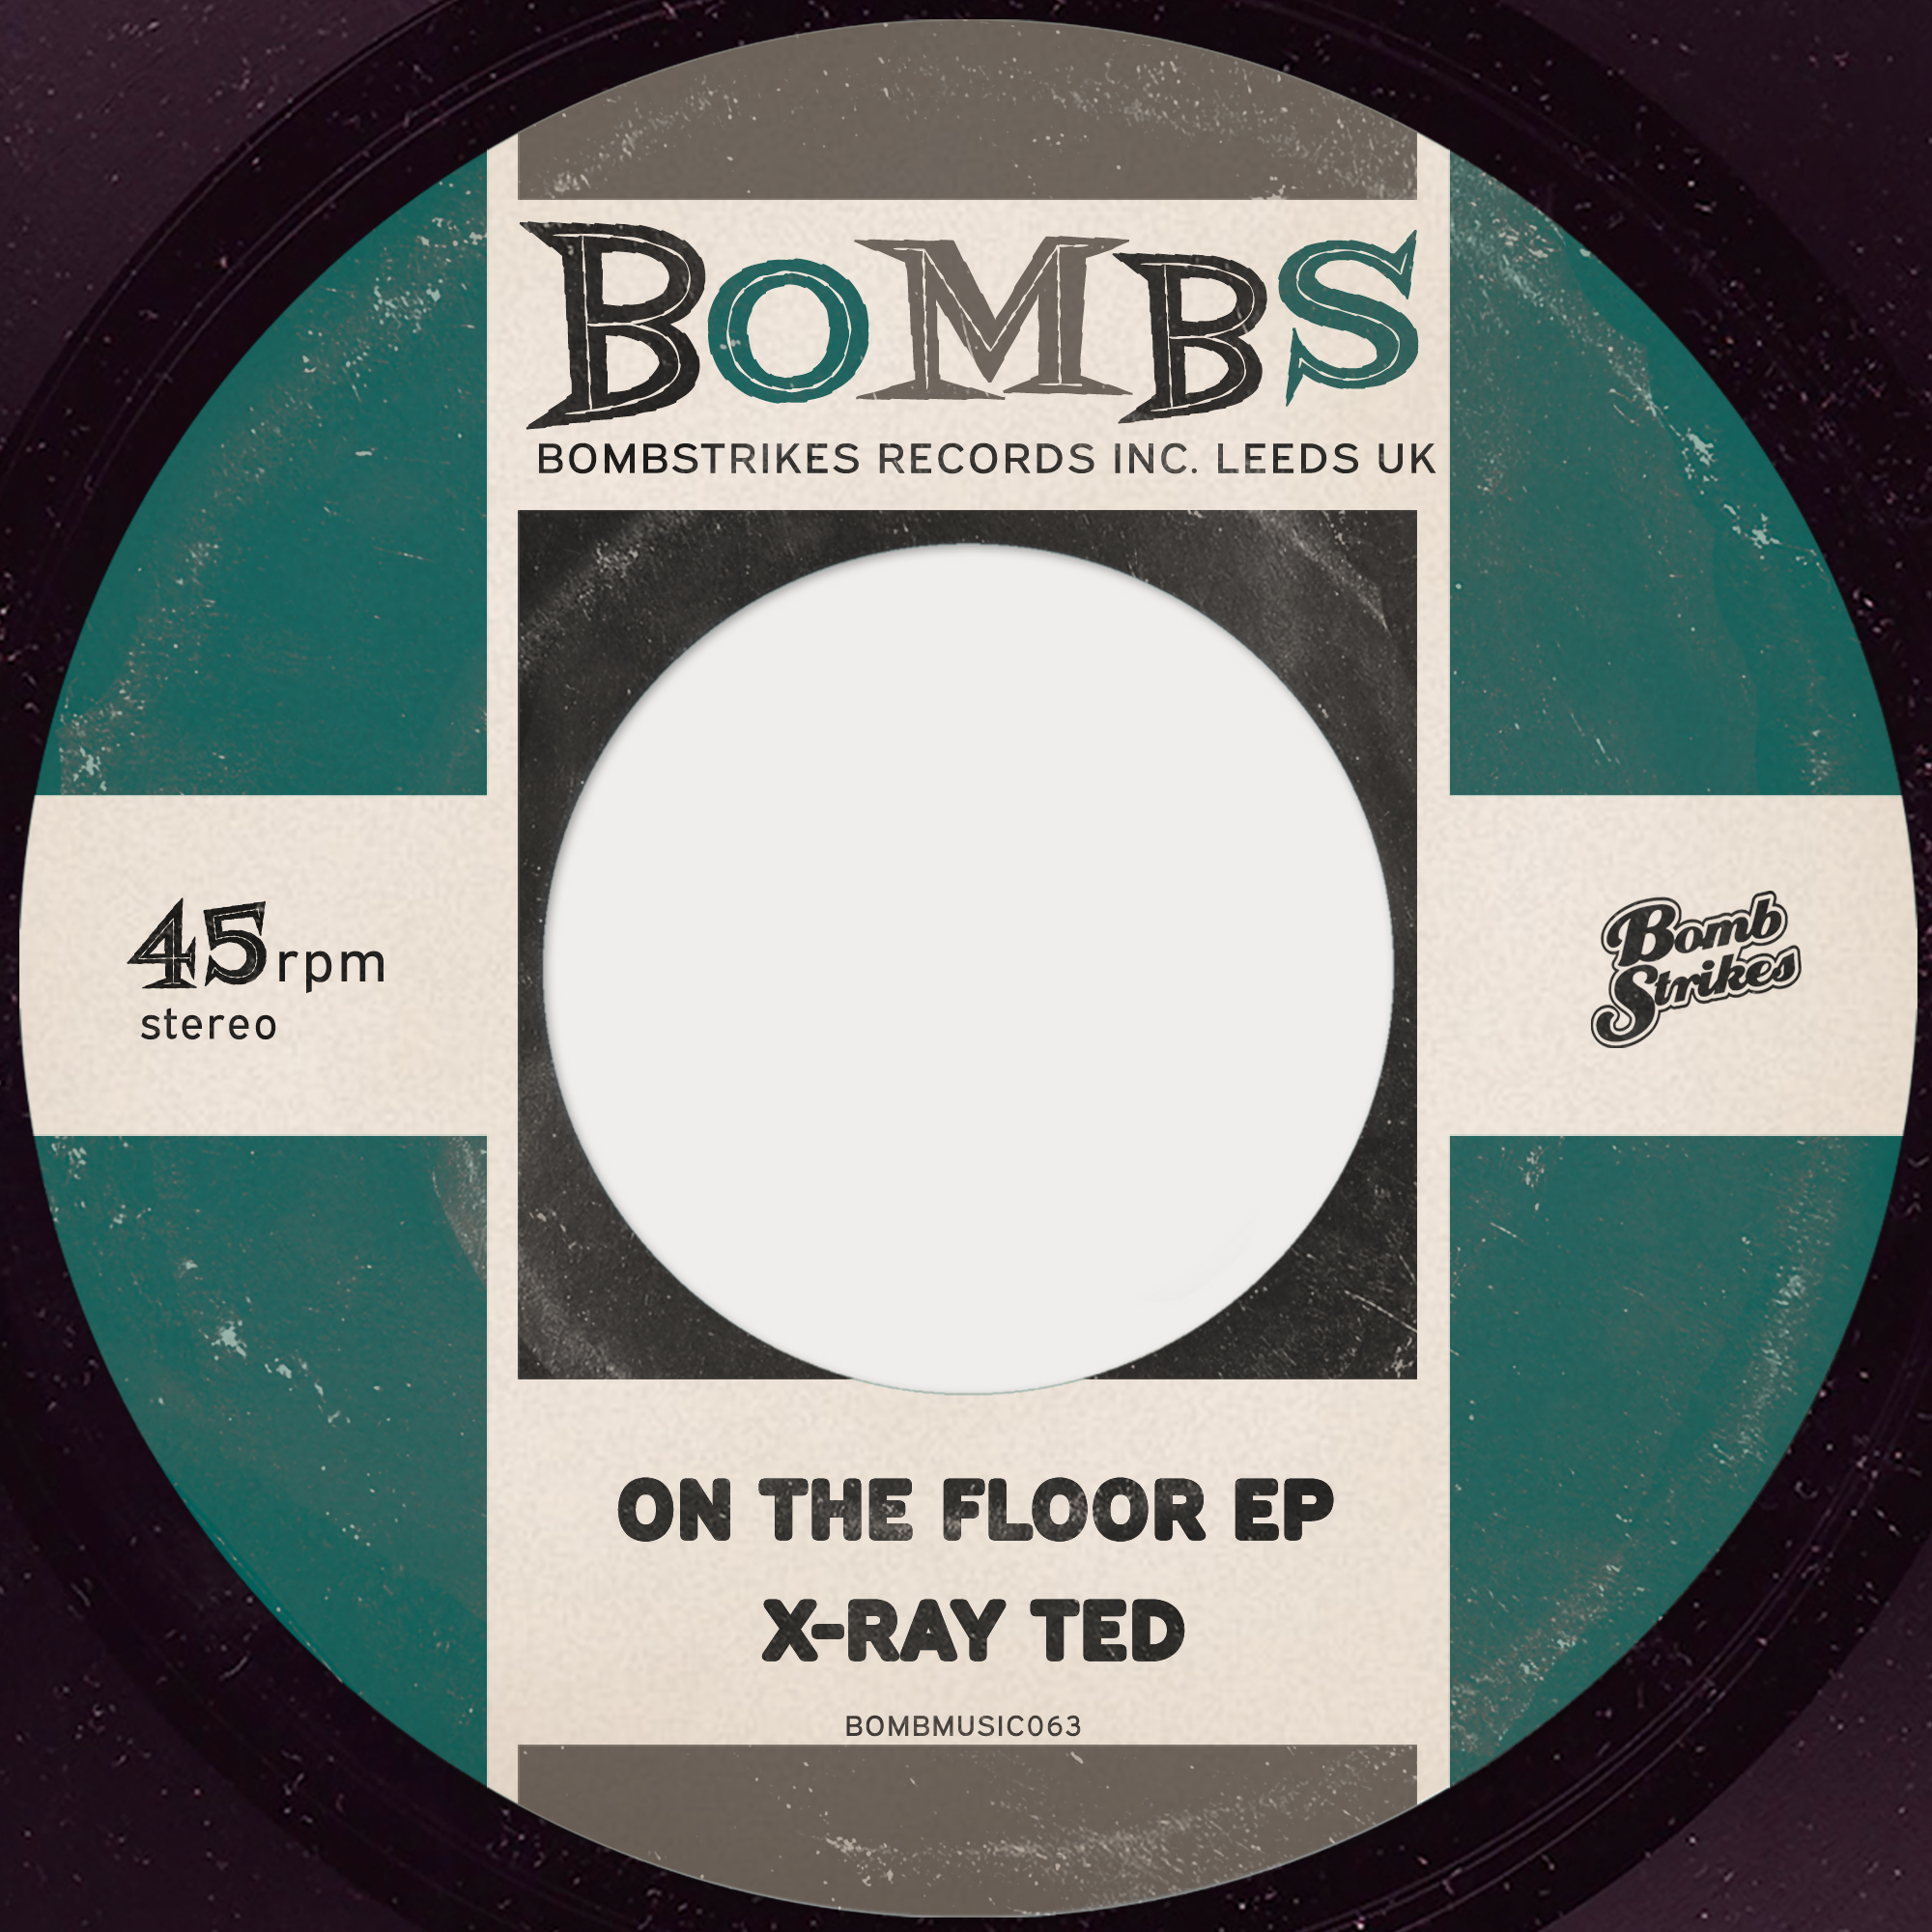 X-Ray Ted - On the Floor EP Image